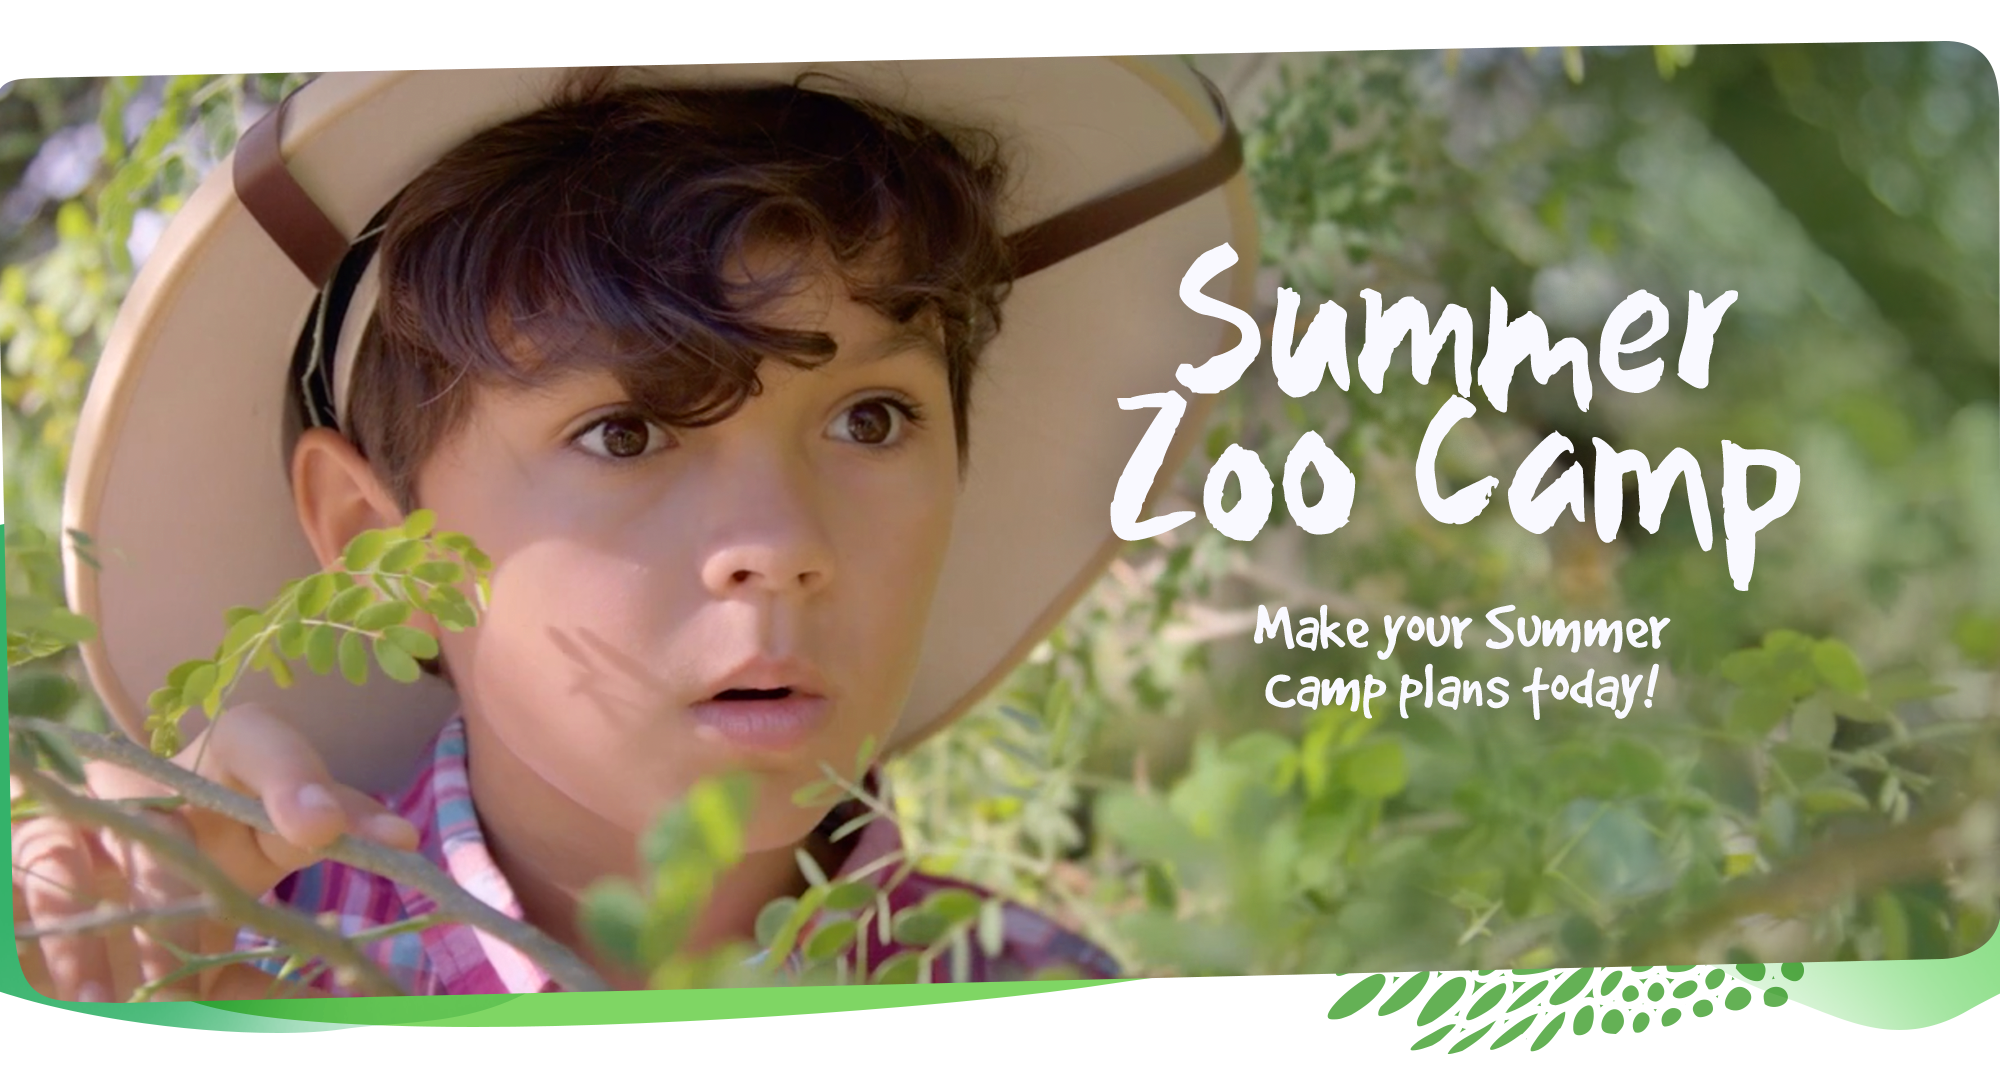 Summer Zoo Camp. Make your summer camp plans today. Click for more information.